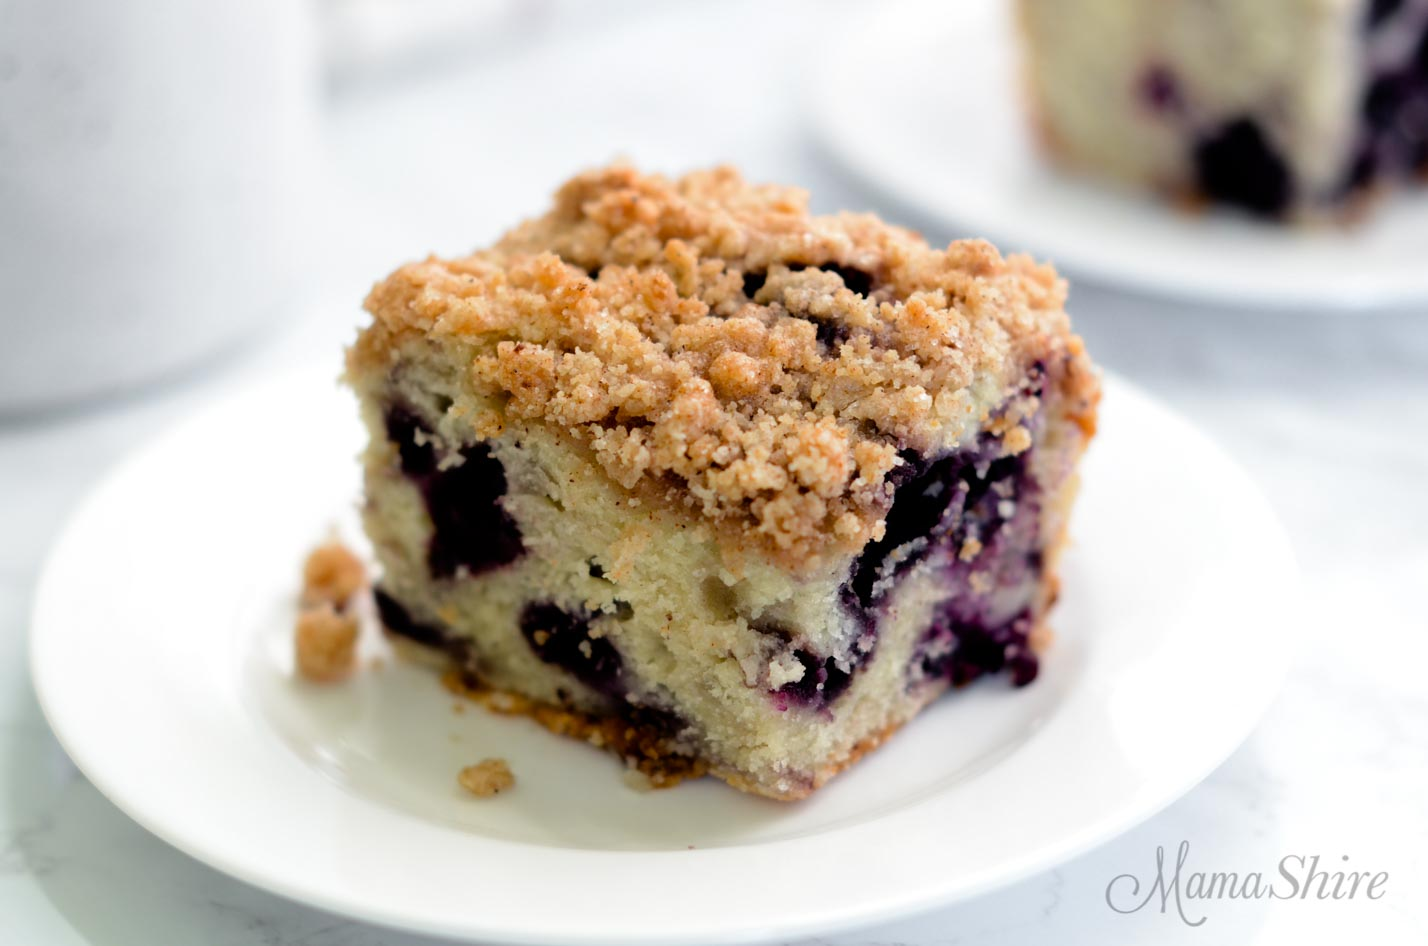 Coffee cake with blueberries.